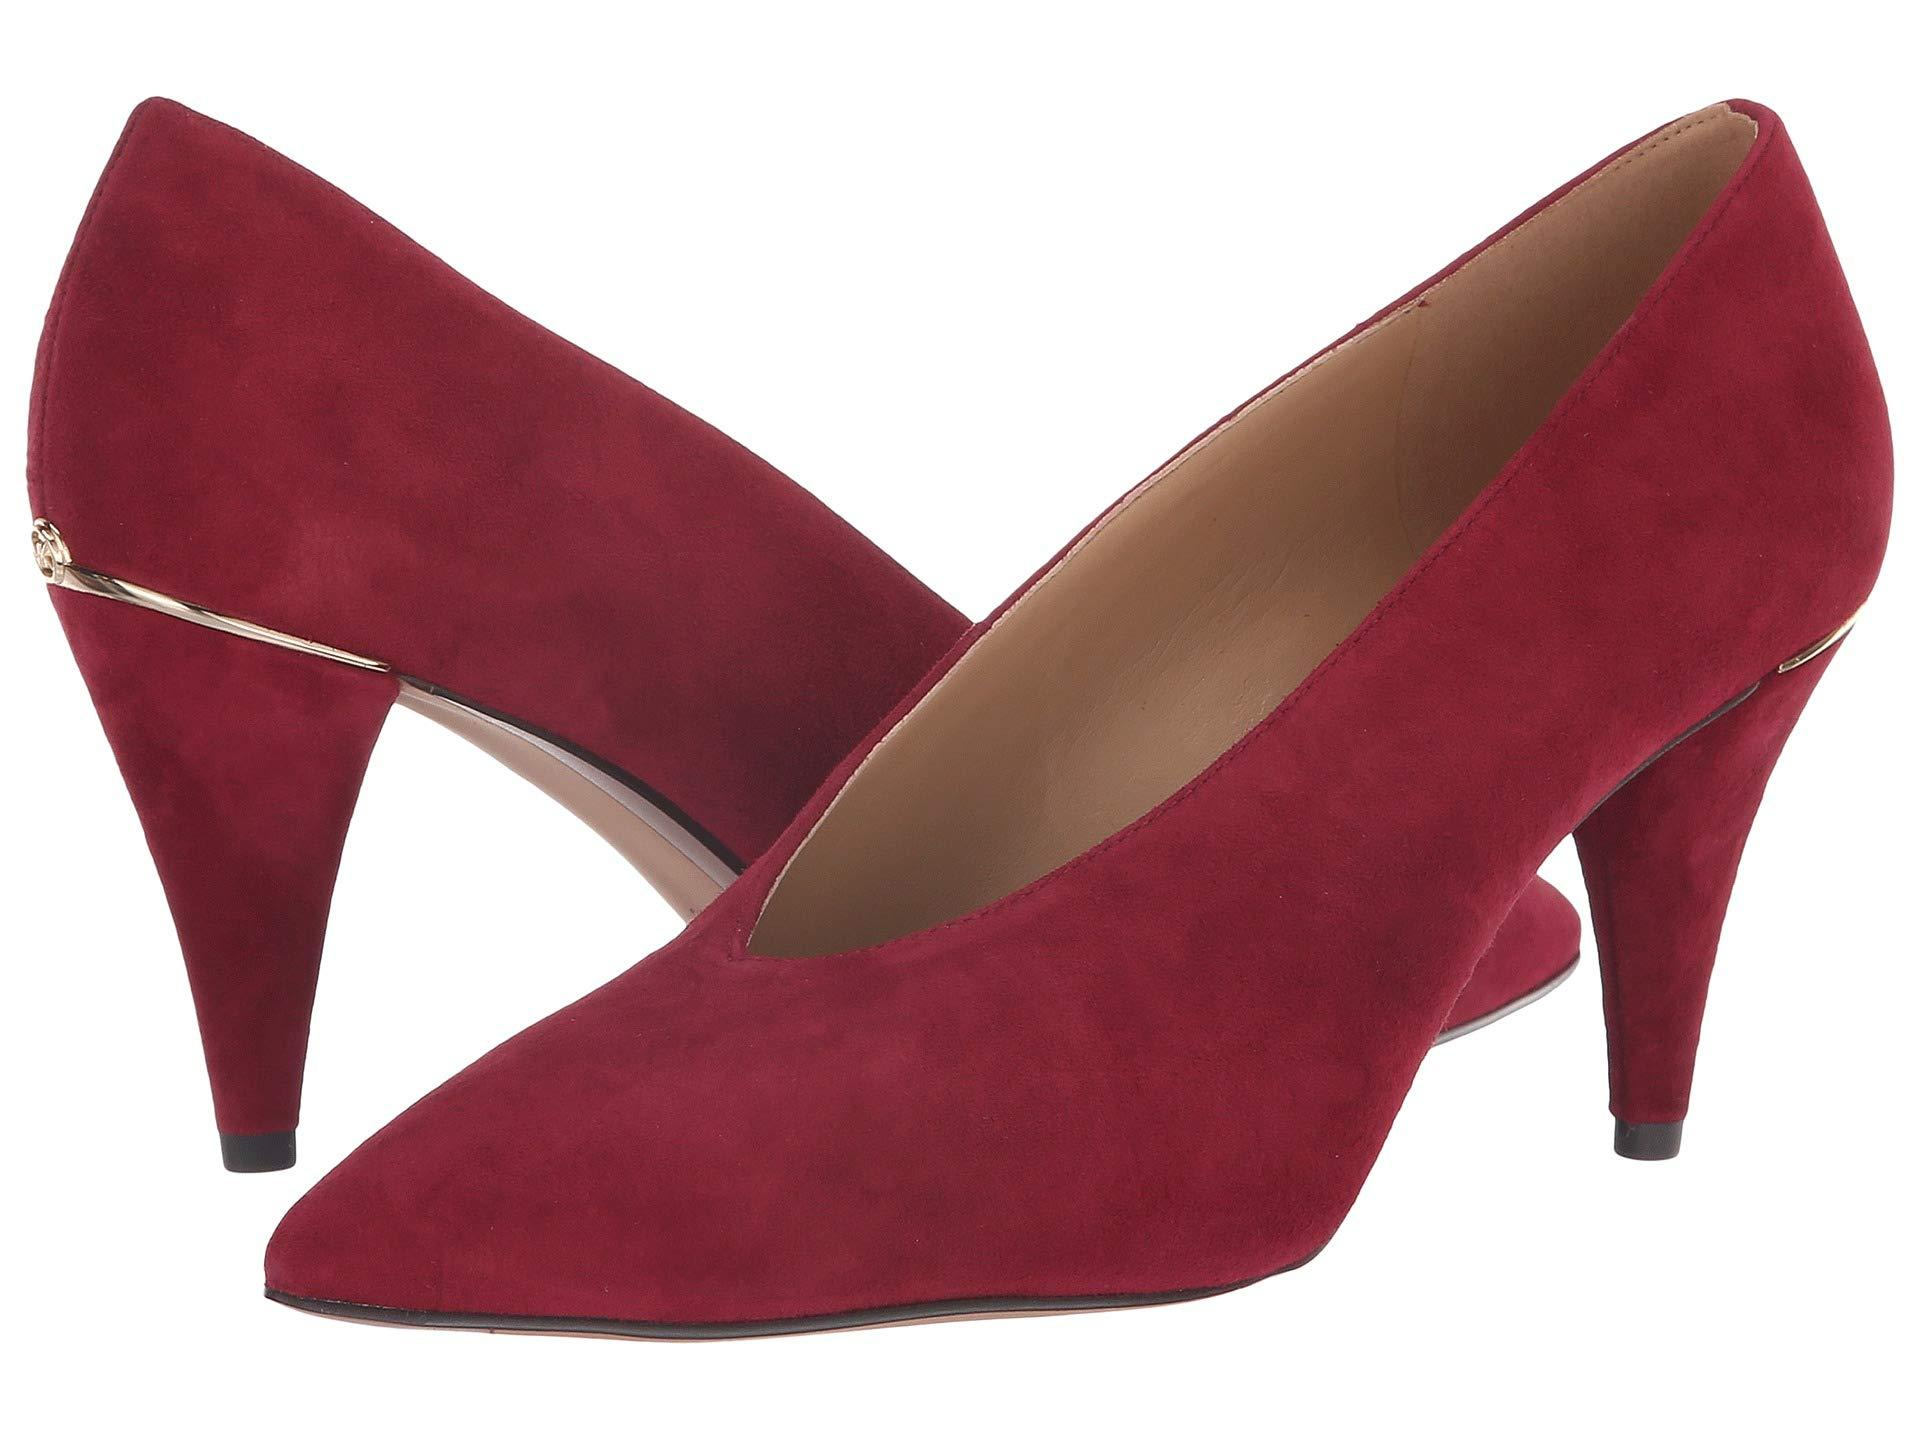 839787a5fdeb Lyst - MICHAEL Michael Kors Lizzy Mid Pump in Red